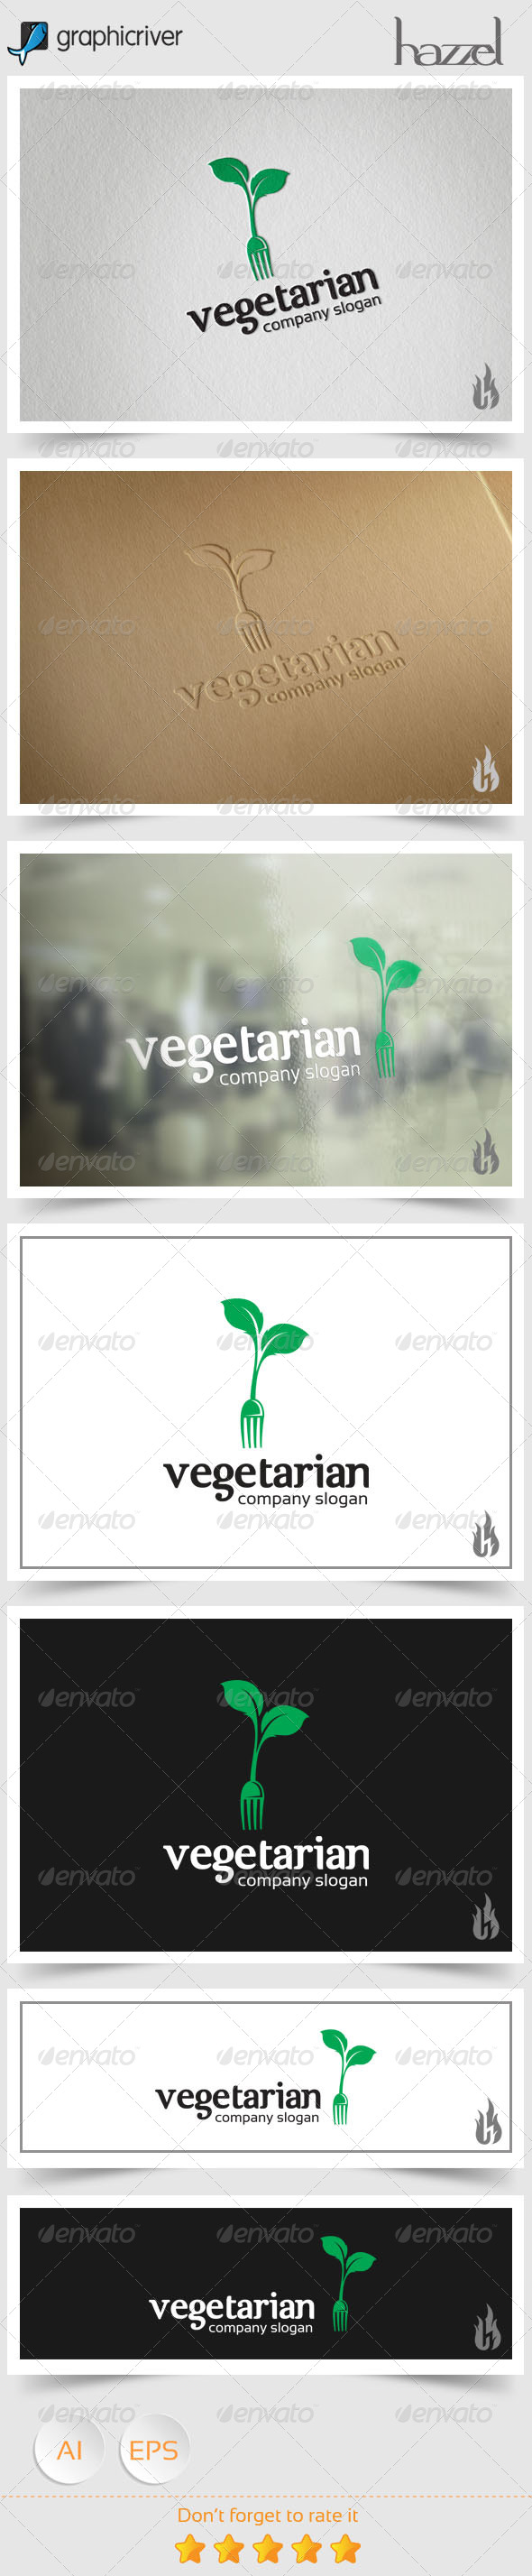 GraphicRiver Vegetarian Logo 8588997